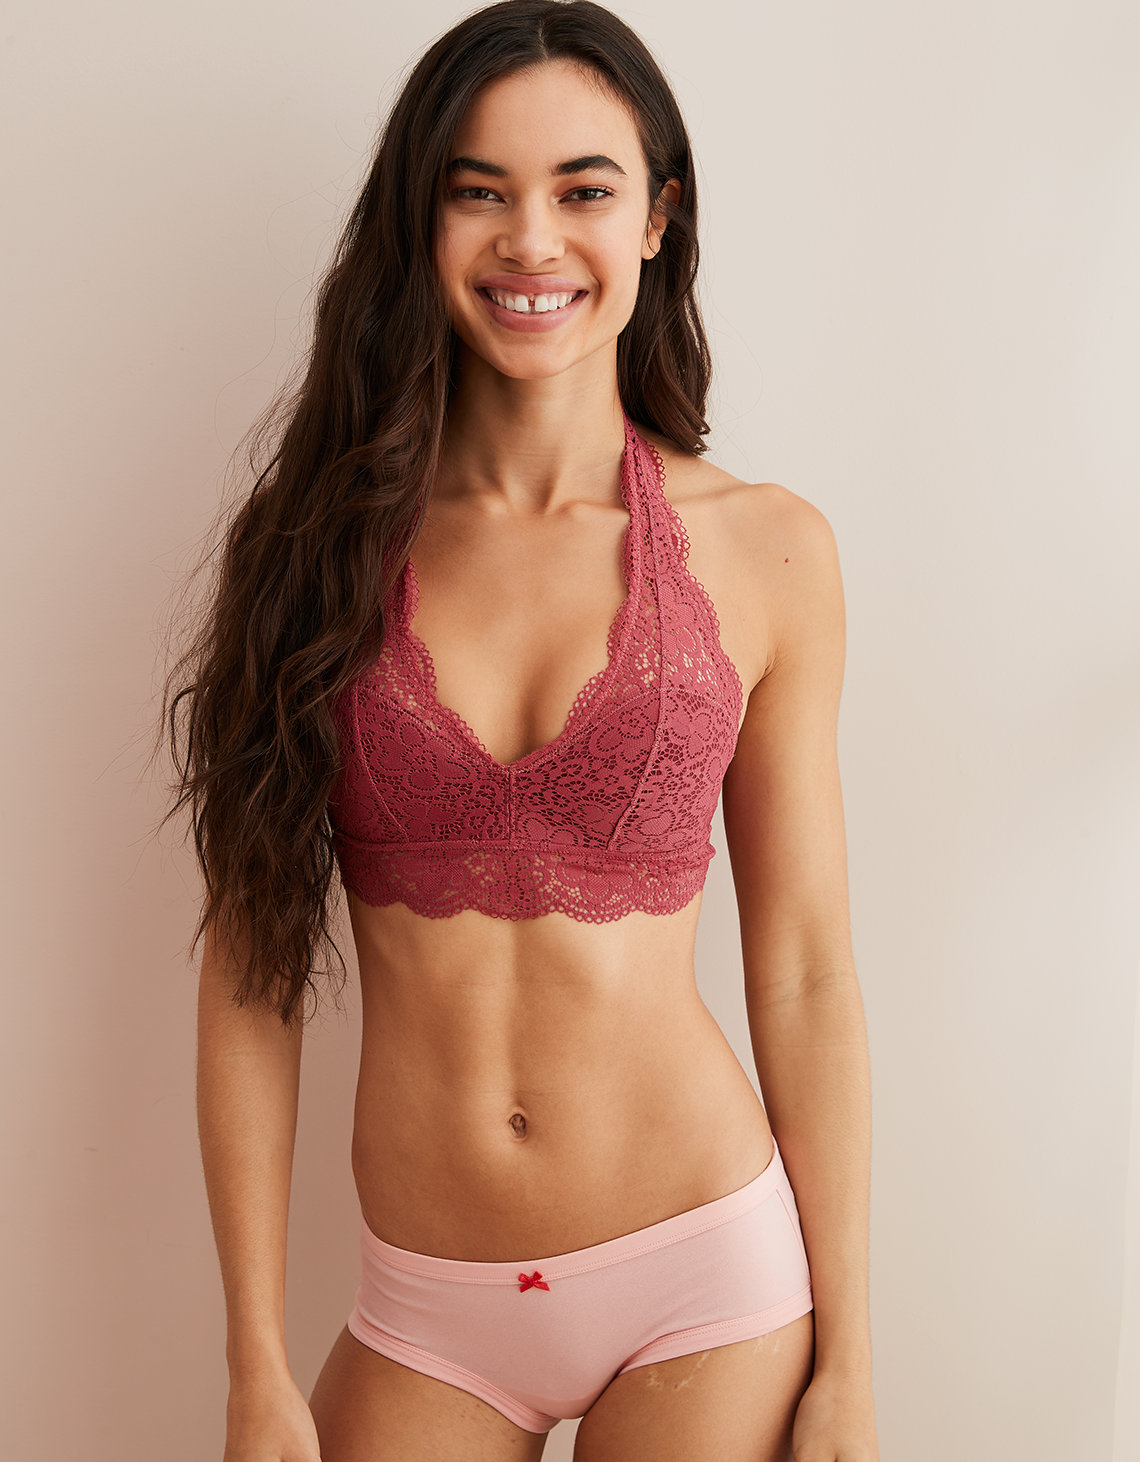 f899acf50d Aerie Wildflower Lace Padded Halter Bralette. Placeholder image. Product  Image